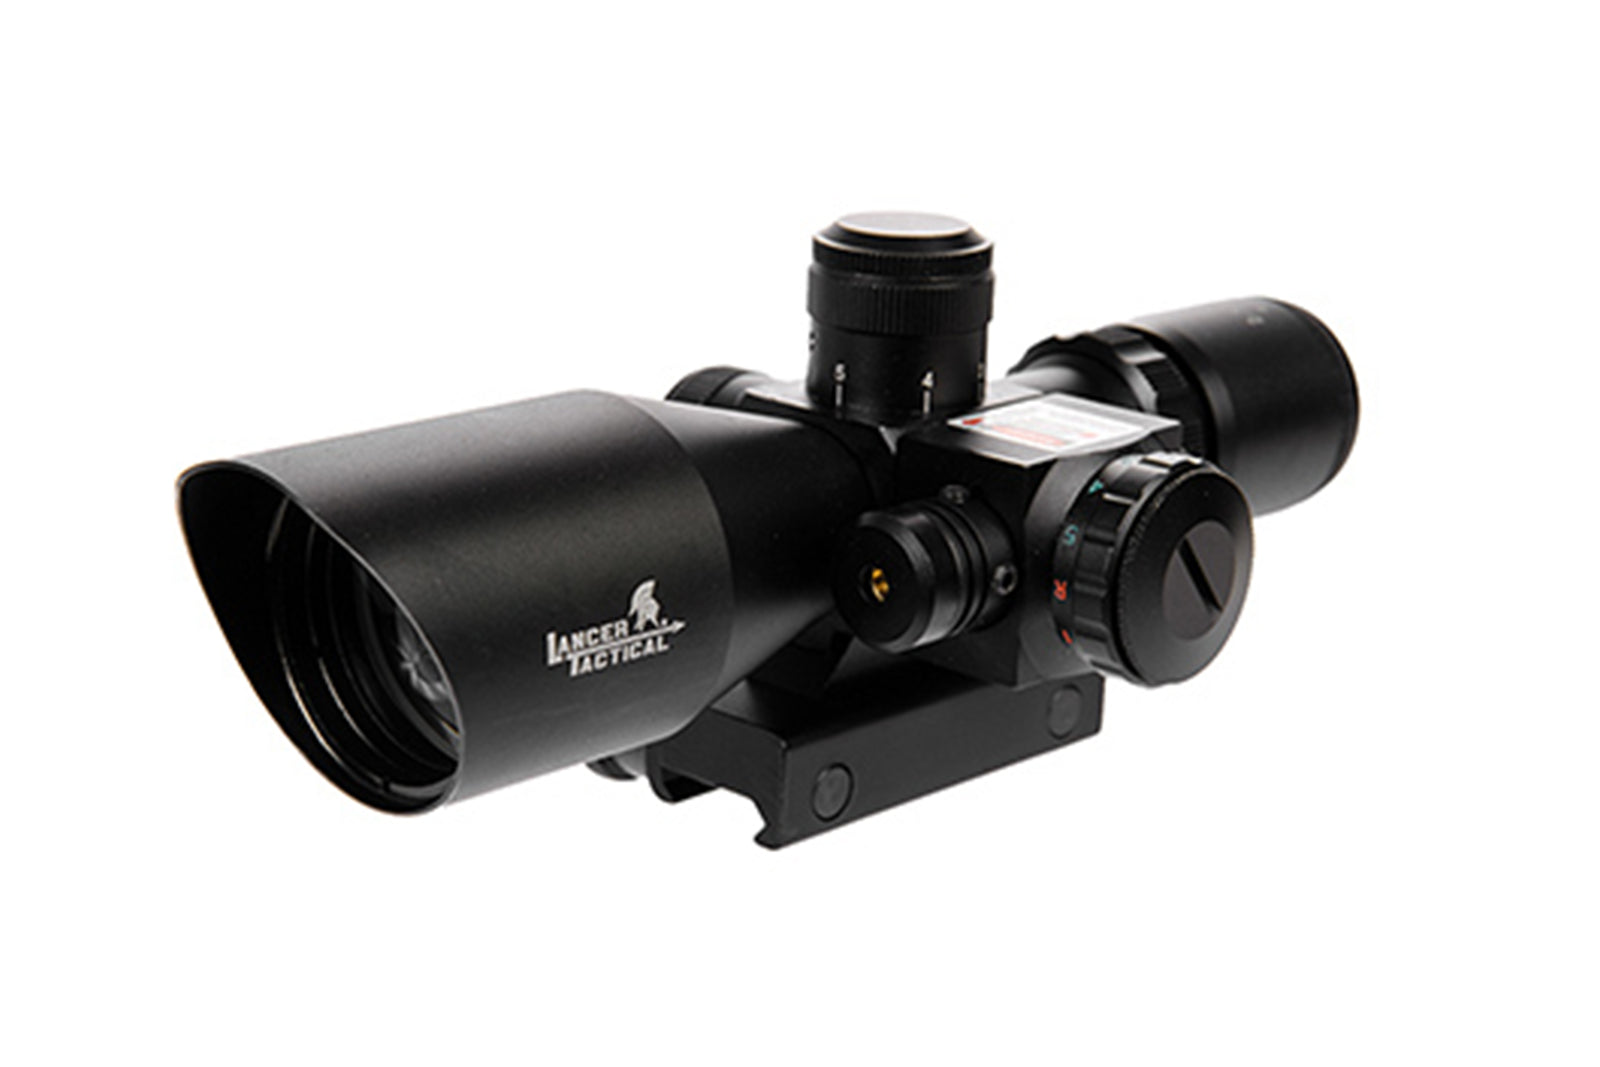 CA-414B 2.5-10X40 RED & GREEN DUAL ILLUMINATED SCOPE AND LASER